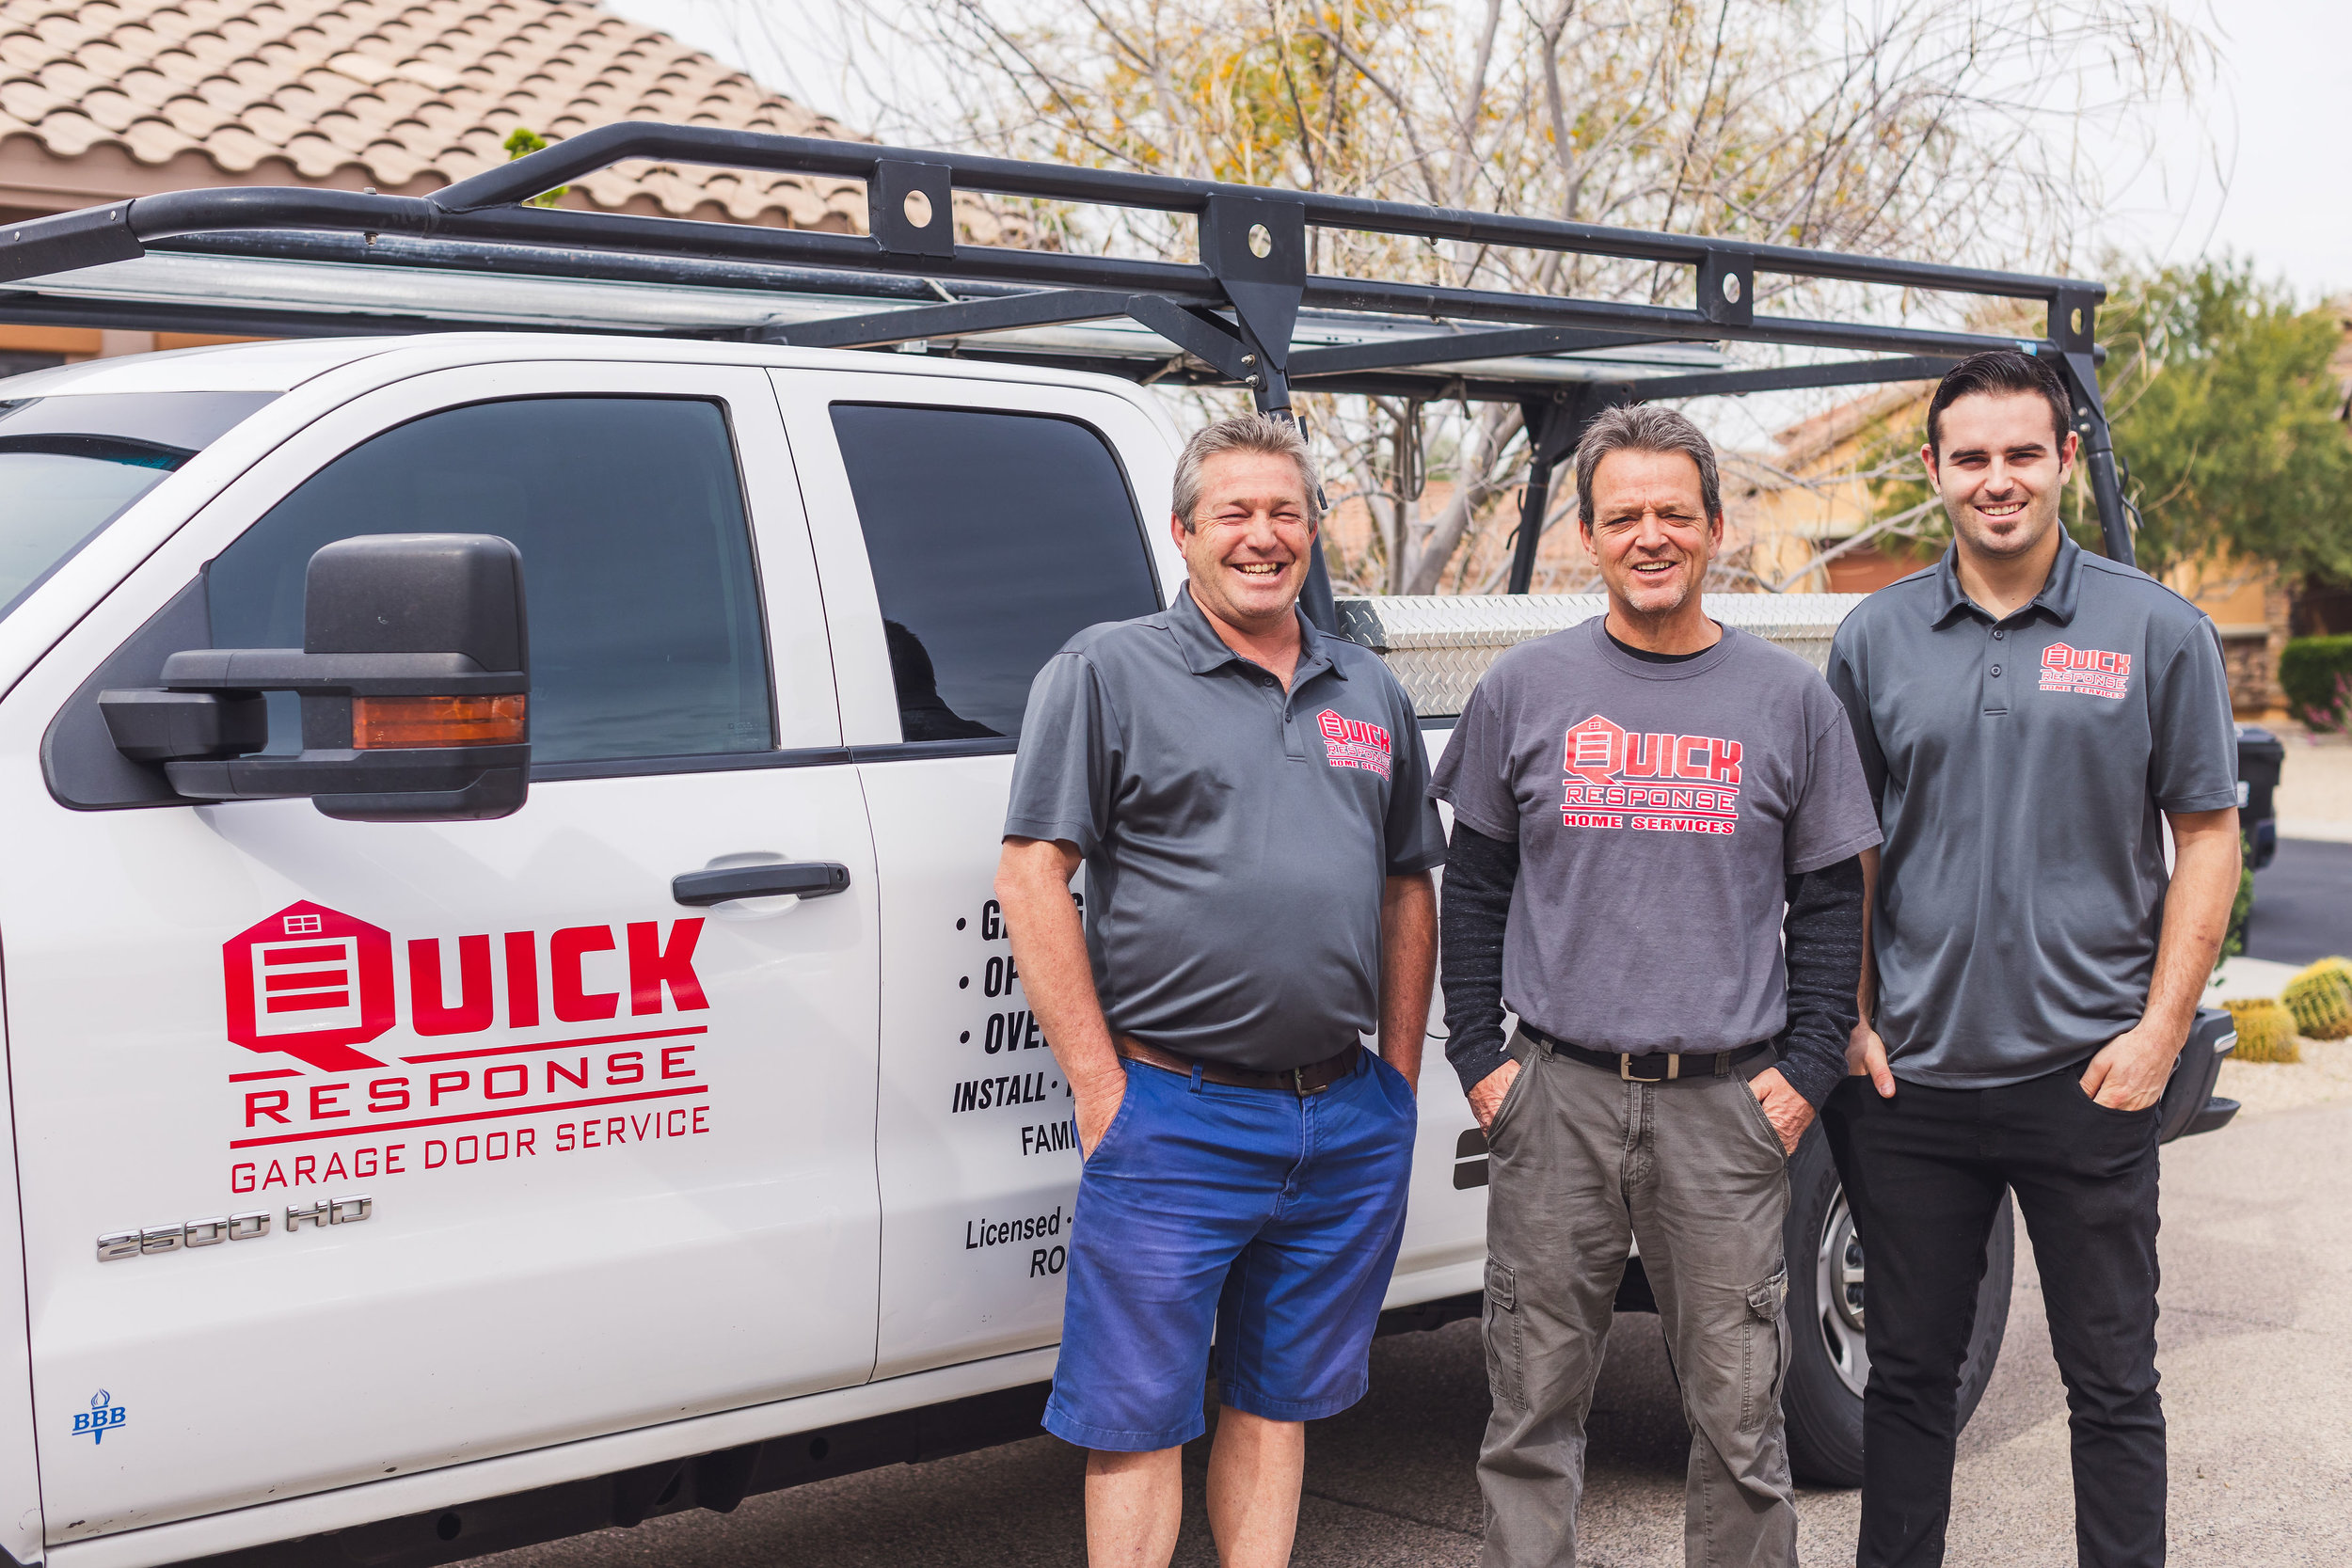 Garage Door Repair Queen Creek Az Garage Door Repair Garage Door Replacement In Phoenix And Tucson